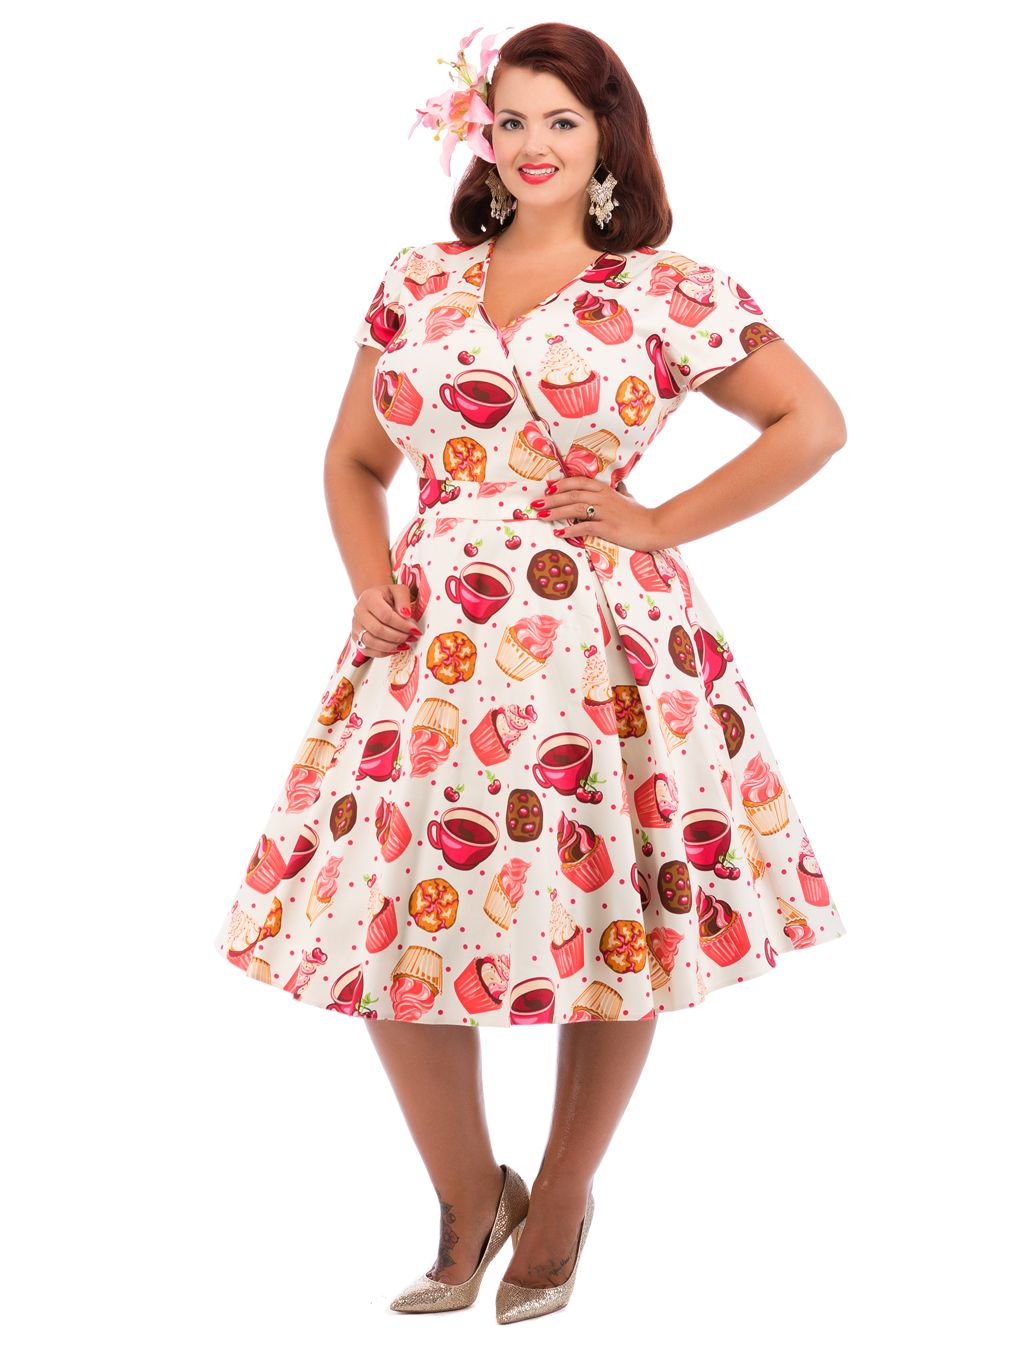 Need this dress | In love in 2019 | Plus size vintage clothing ...